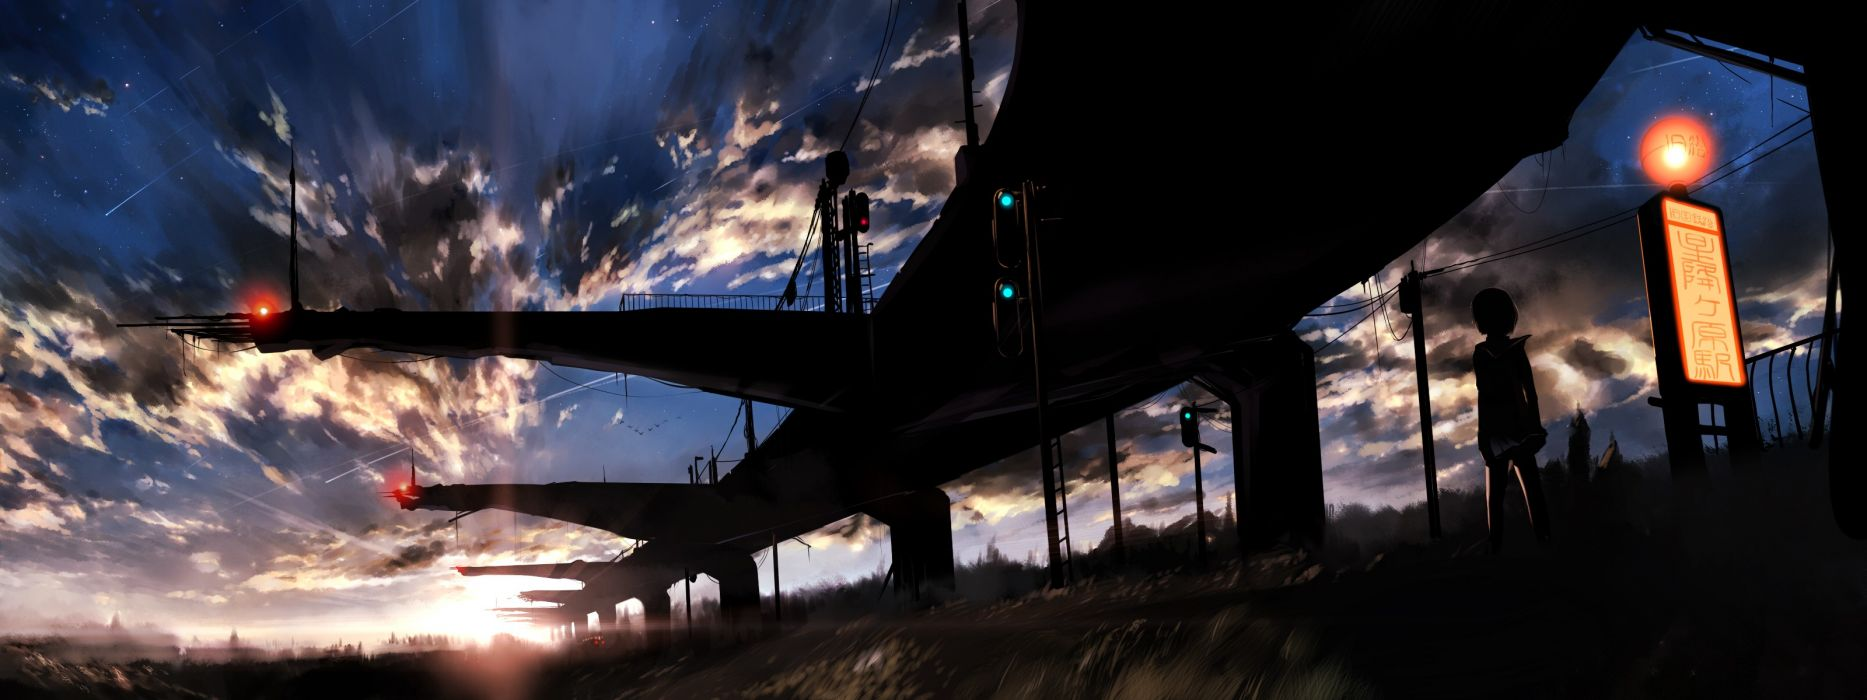 Sunset clouds makoto shinkai scenic 5 centimeters per second skyscapes wallpaper